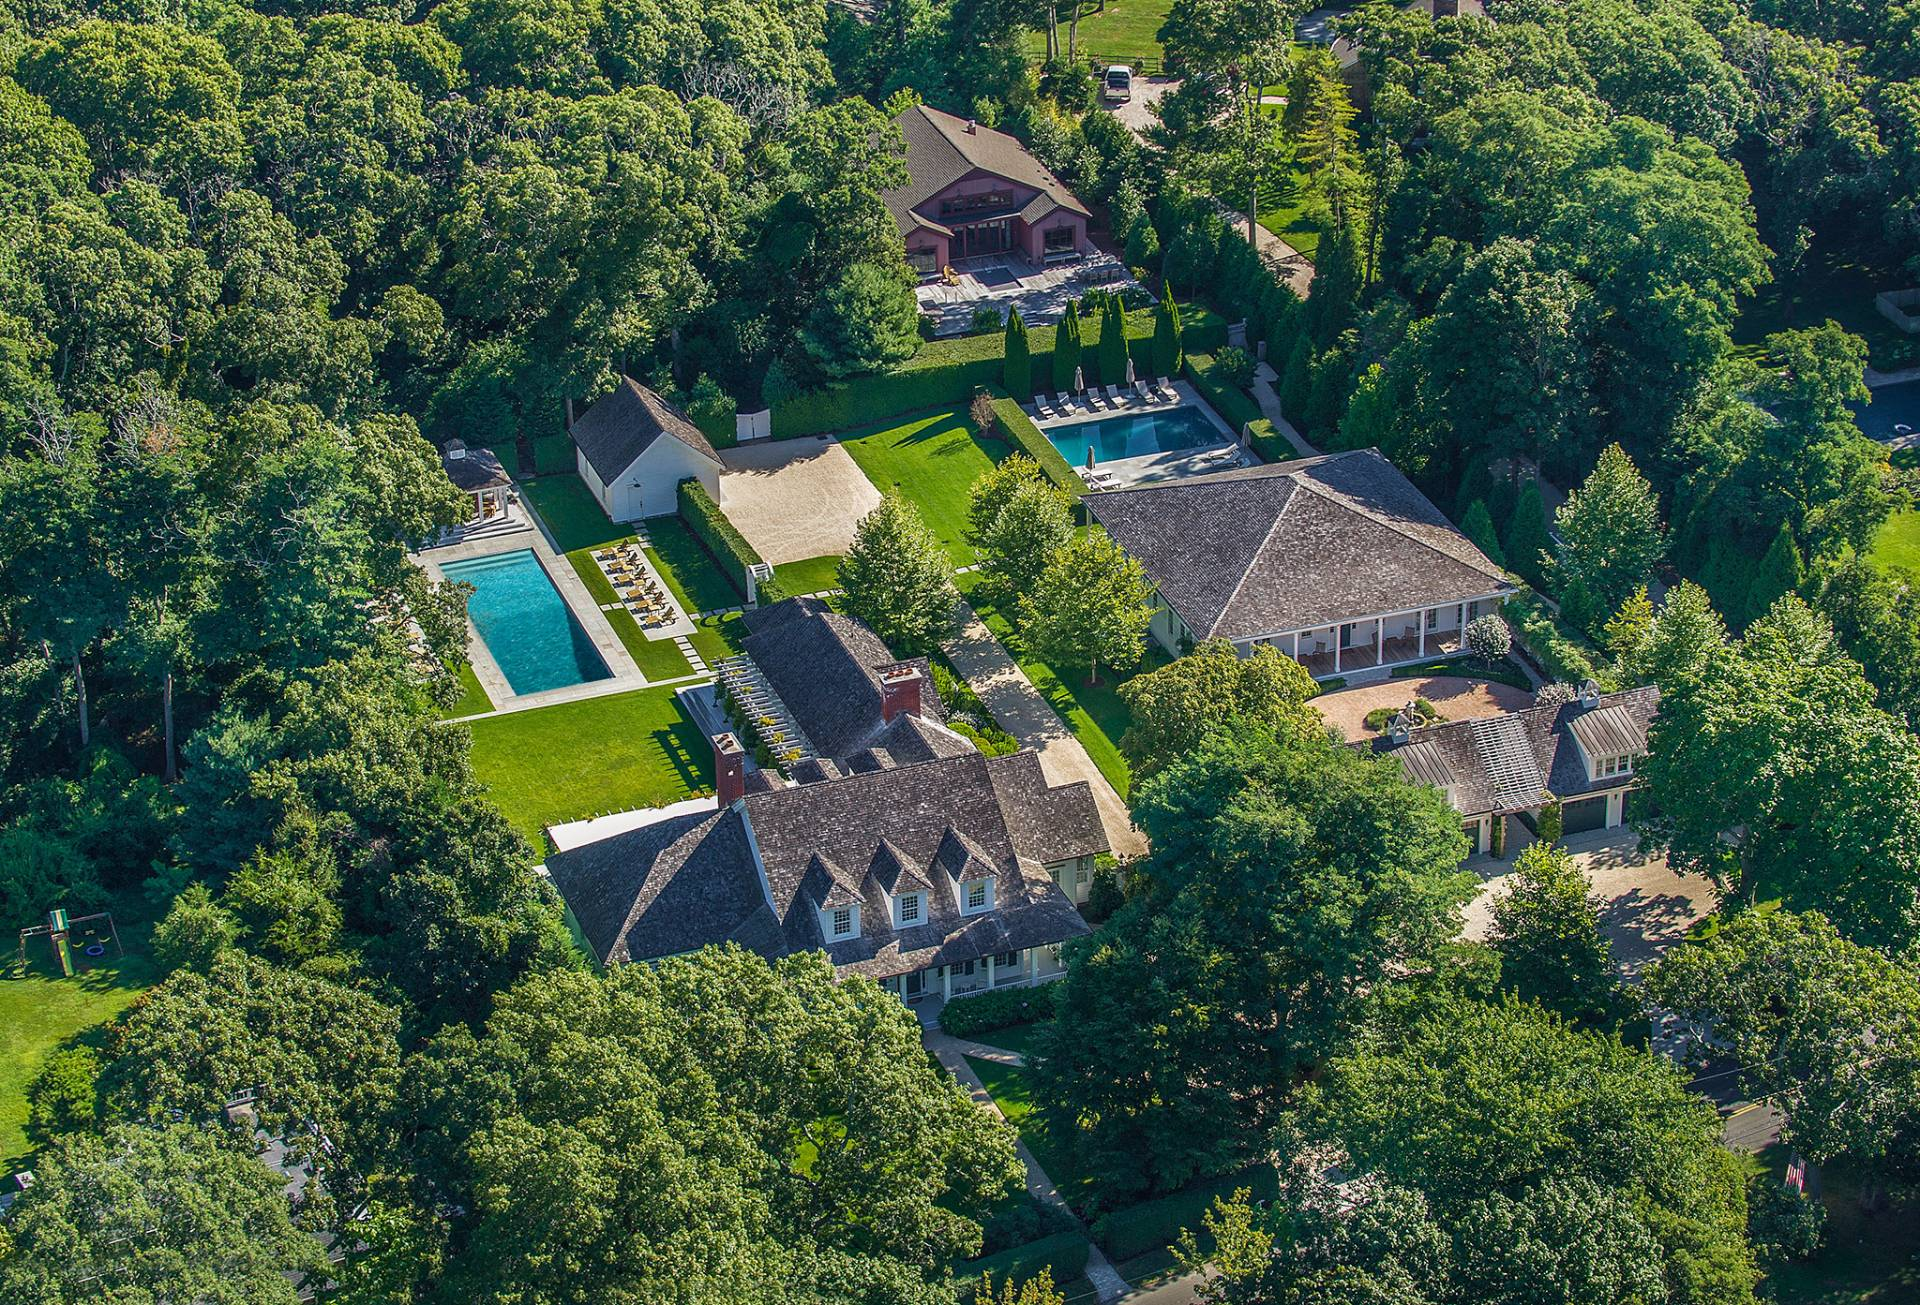 Single Family Home for Sale at Very South In Wainscott Undisclosed Address, Wainscott, New York